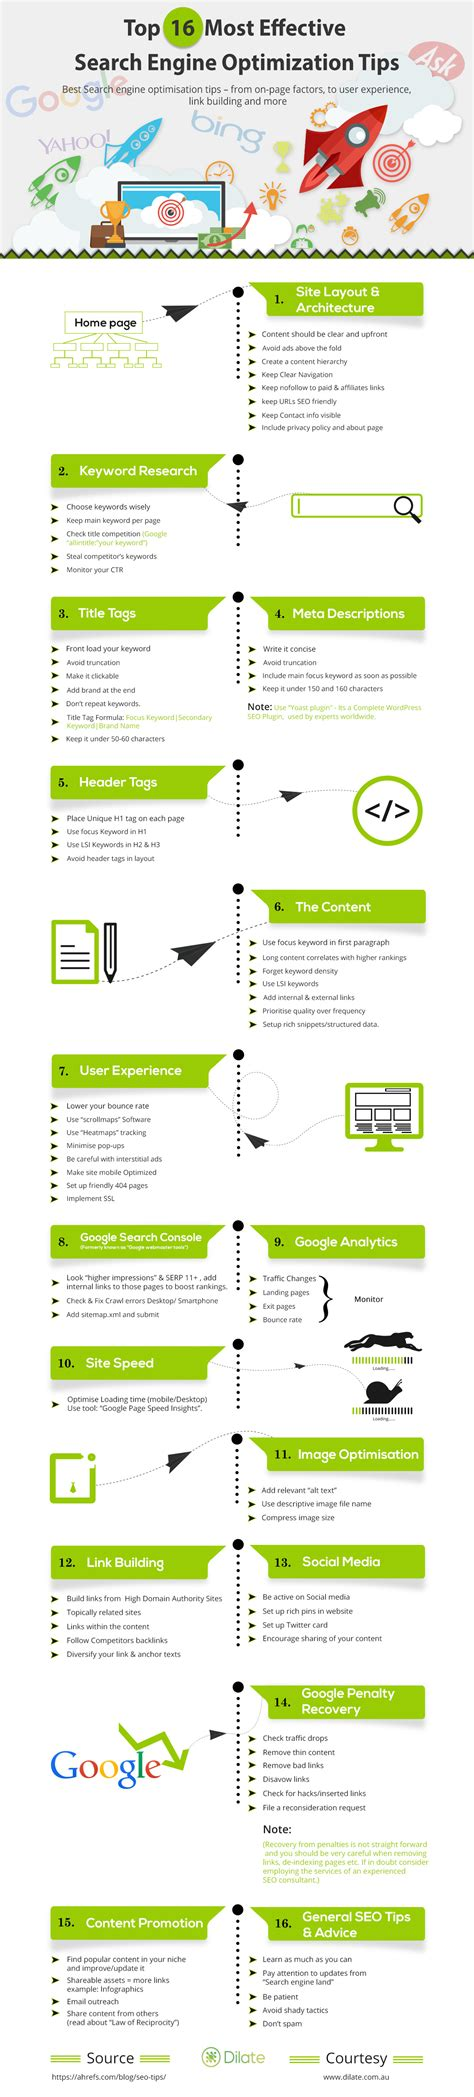 Top Tips On Seo Link Content Marketing For B2b Top Seo Tips 2016 Tools And Tips For Social Media